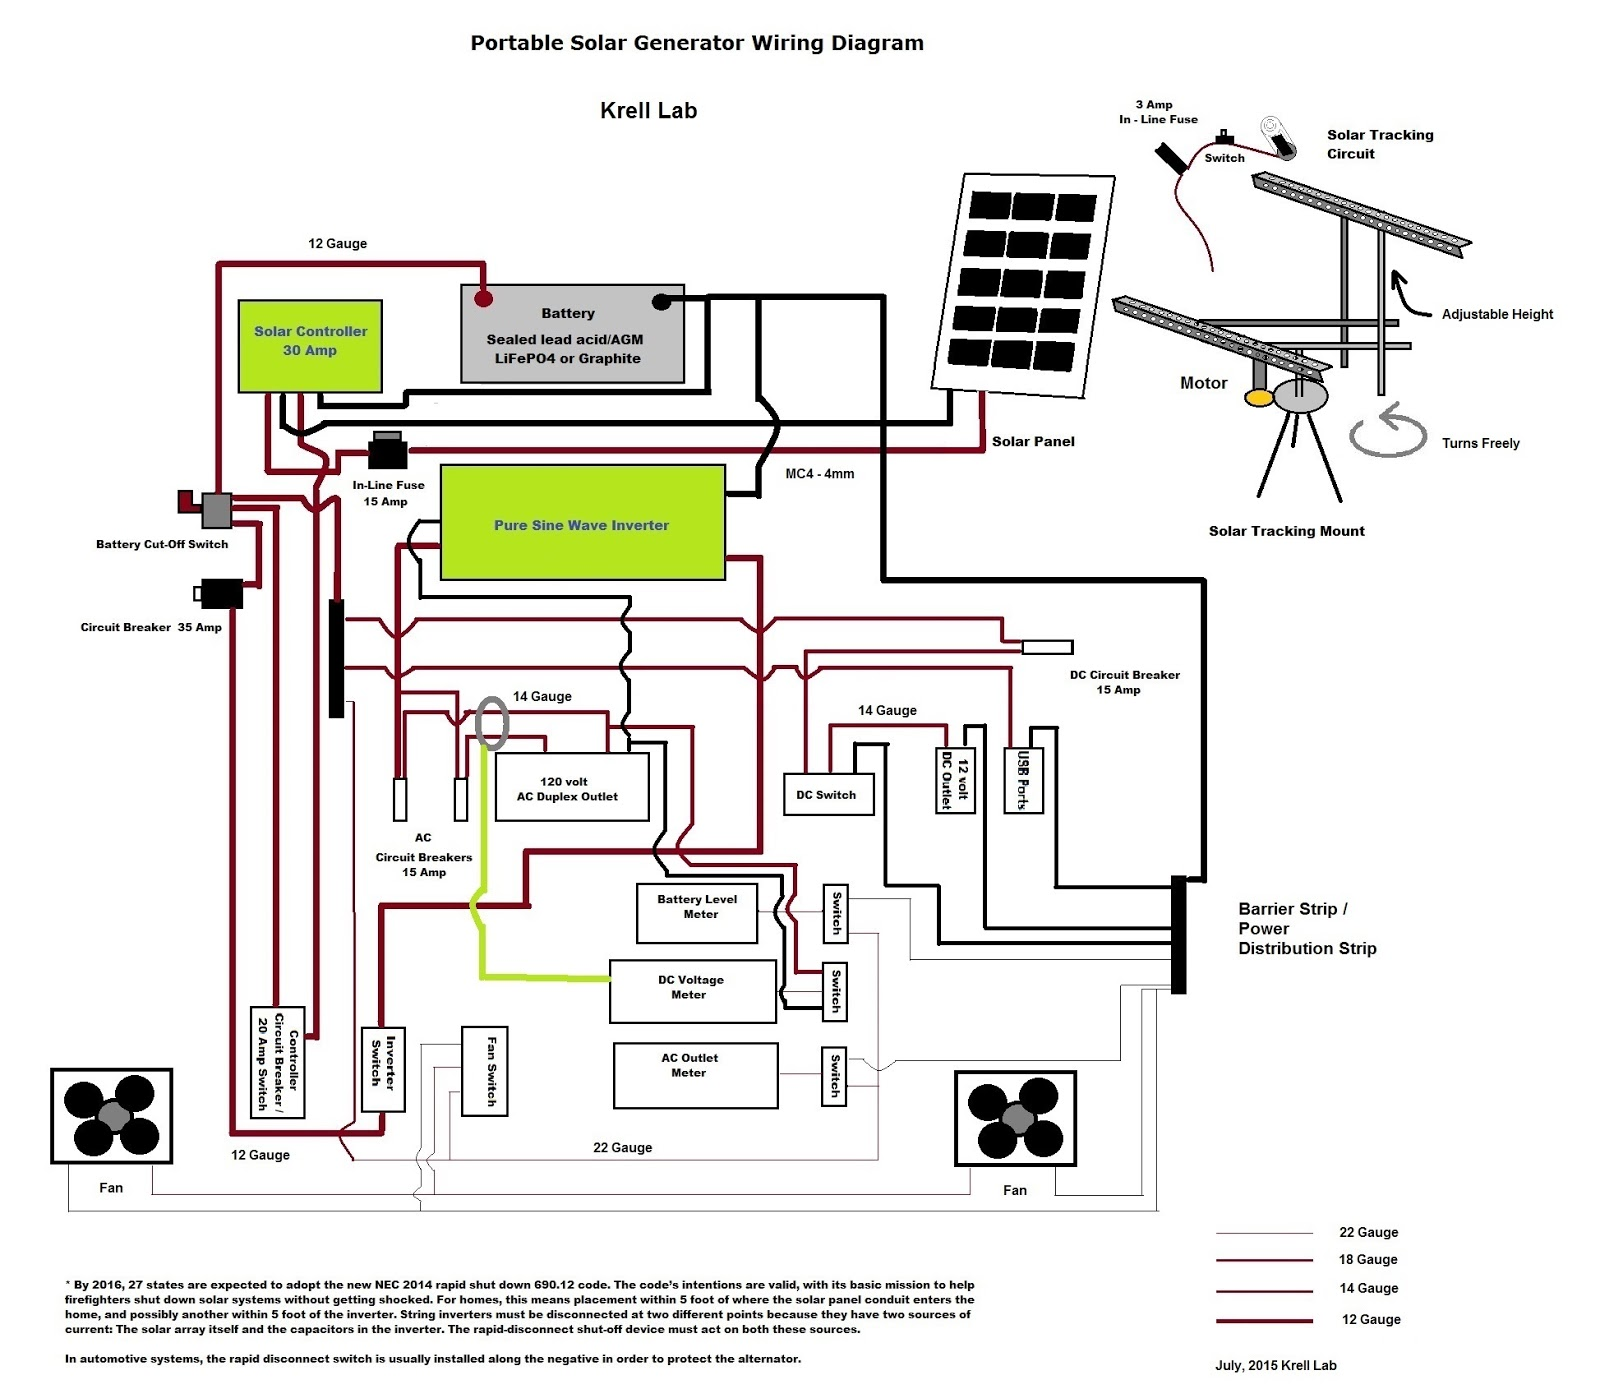 small resolution of wrg 9165 lowe sunchaser pontoon wiring diagramthe krell lab portable solar generator in a battery